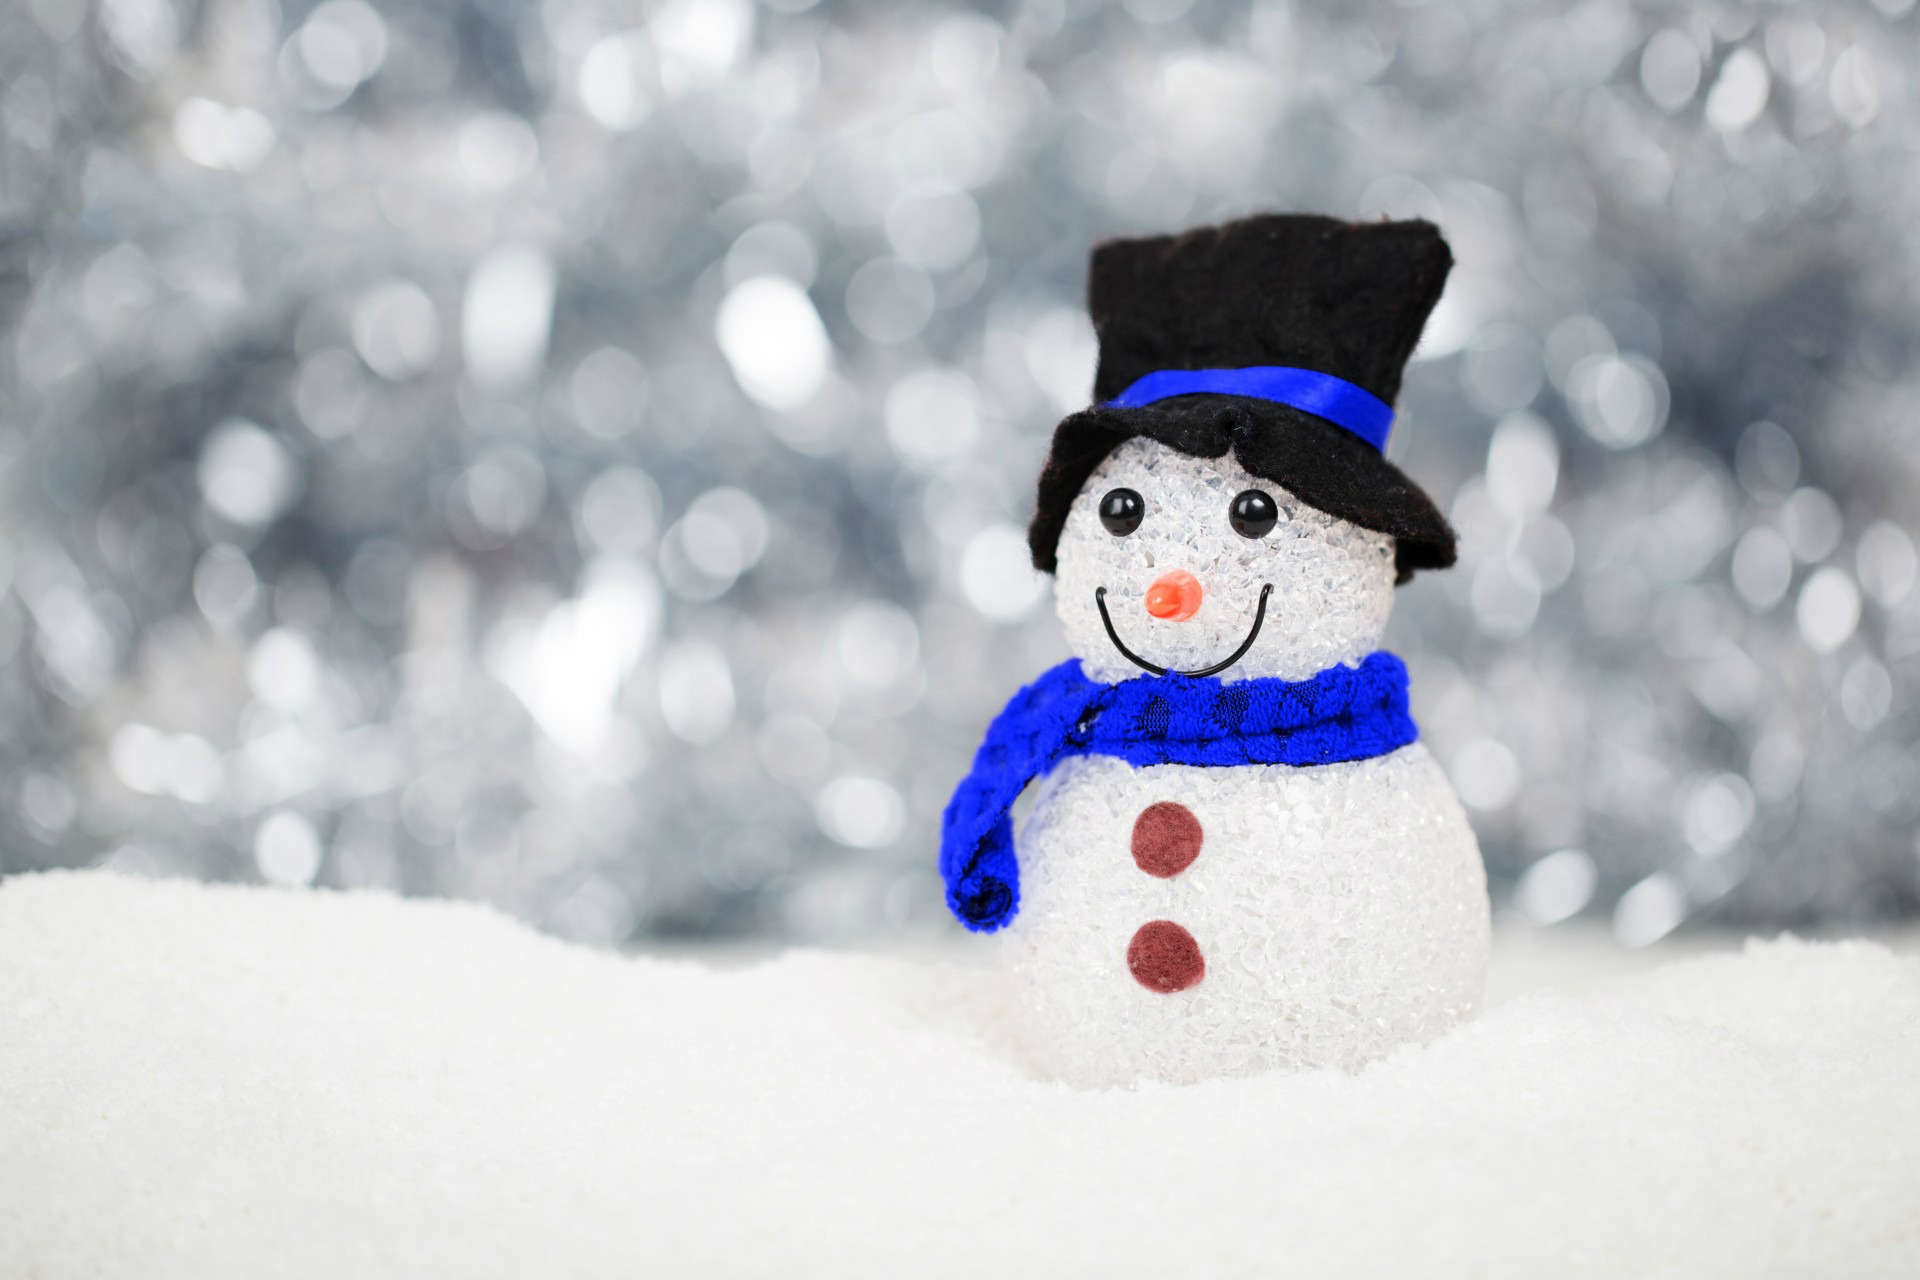 christmas-snow-snowman-decoration-40541.jpg